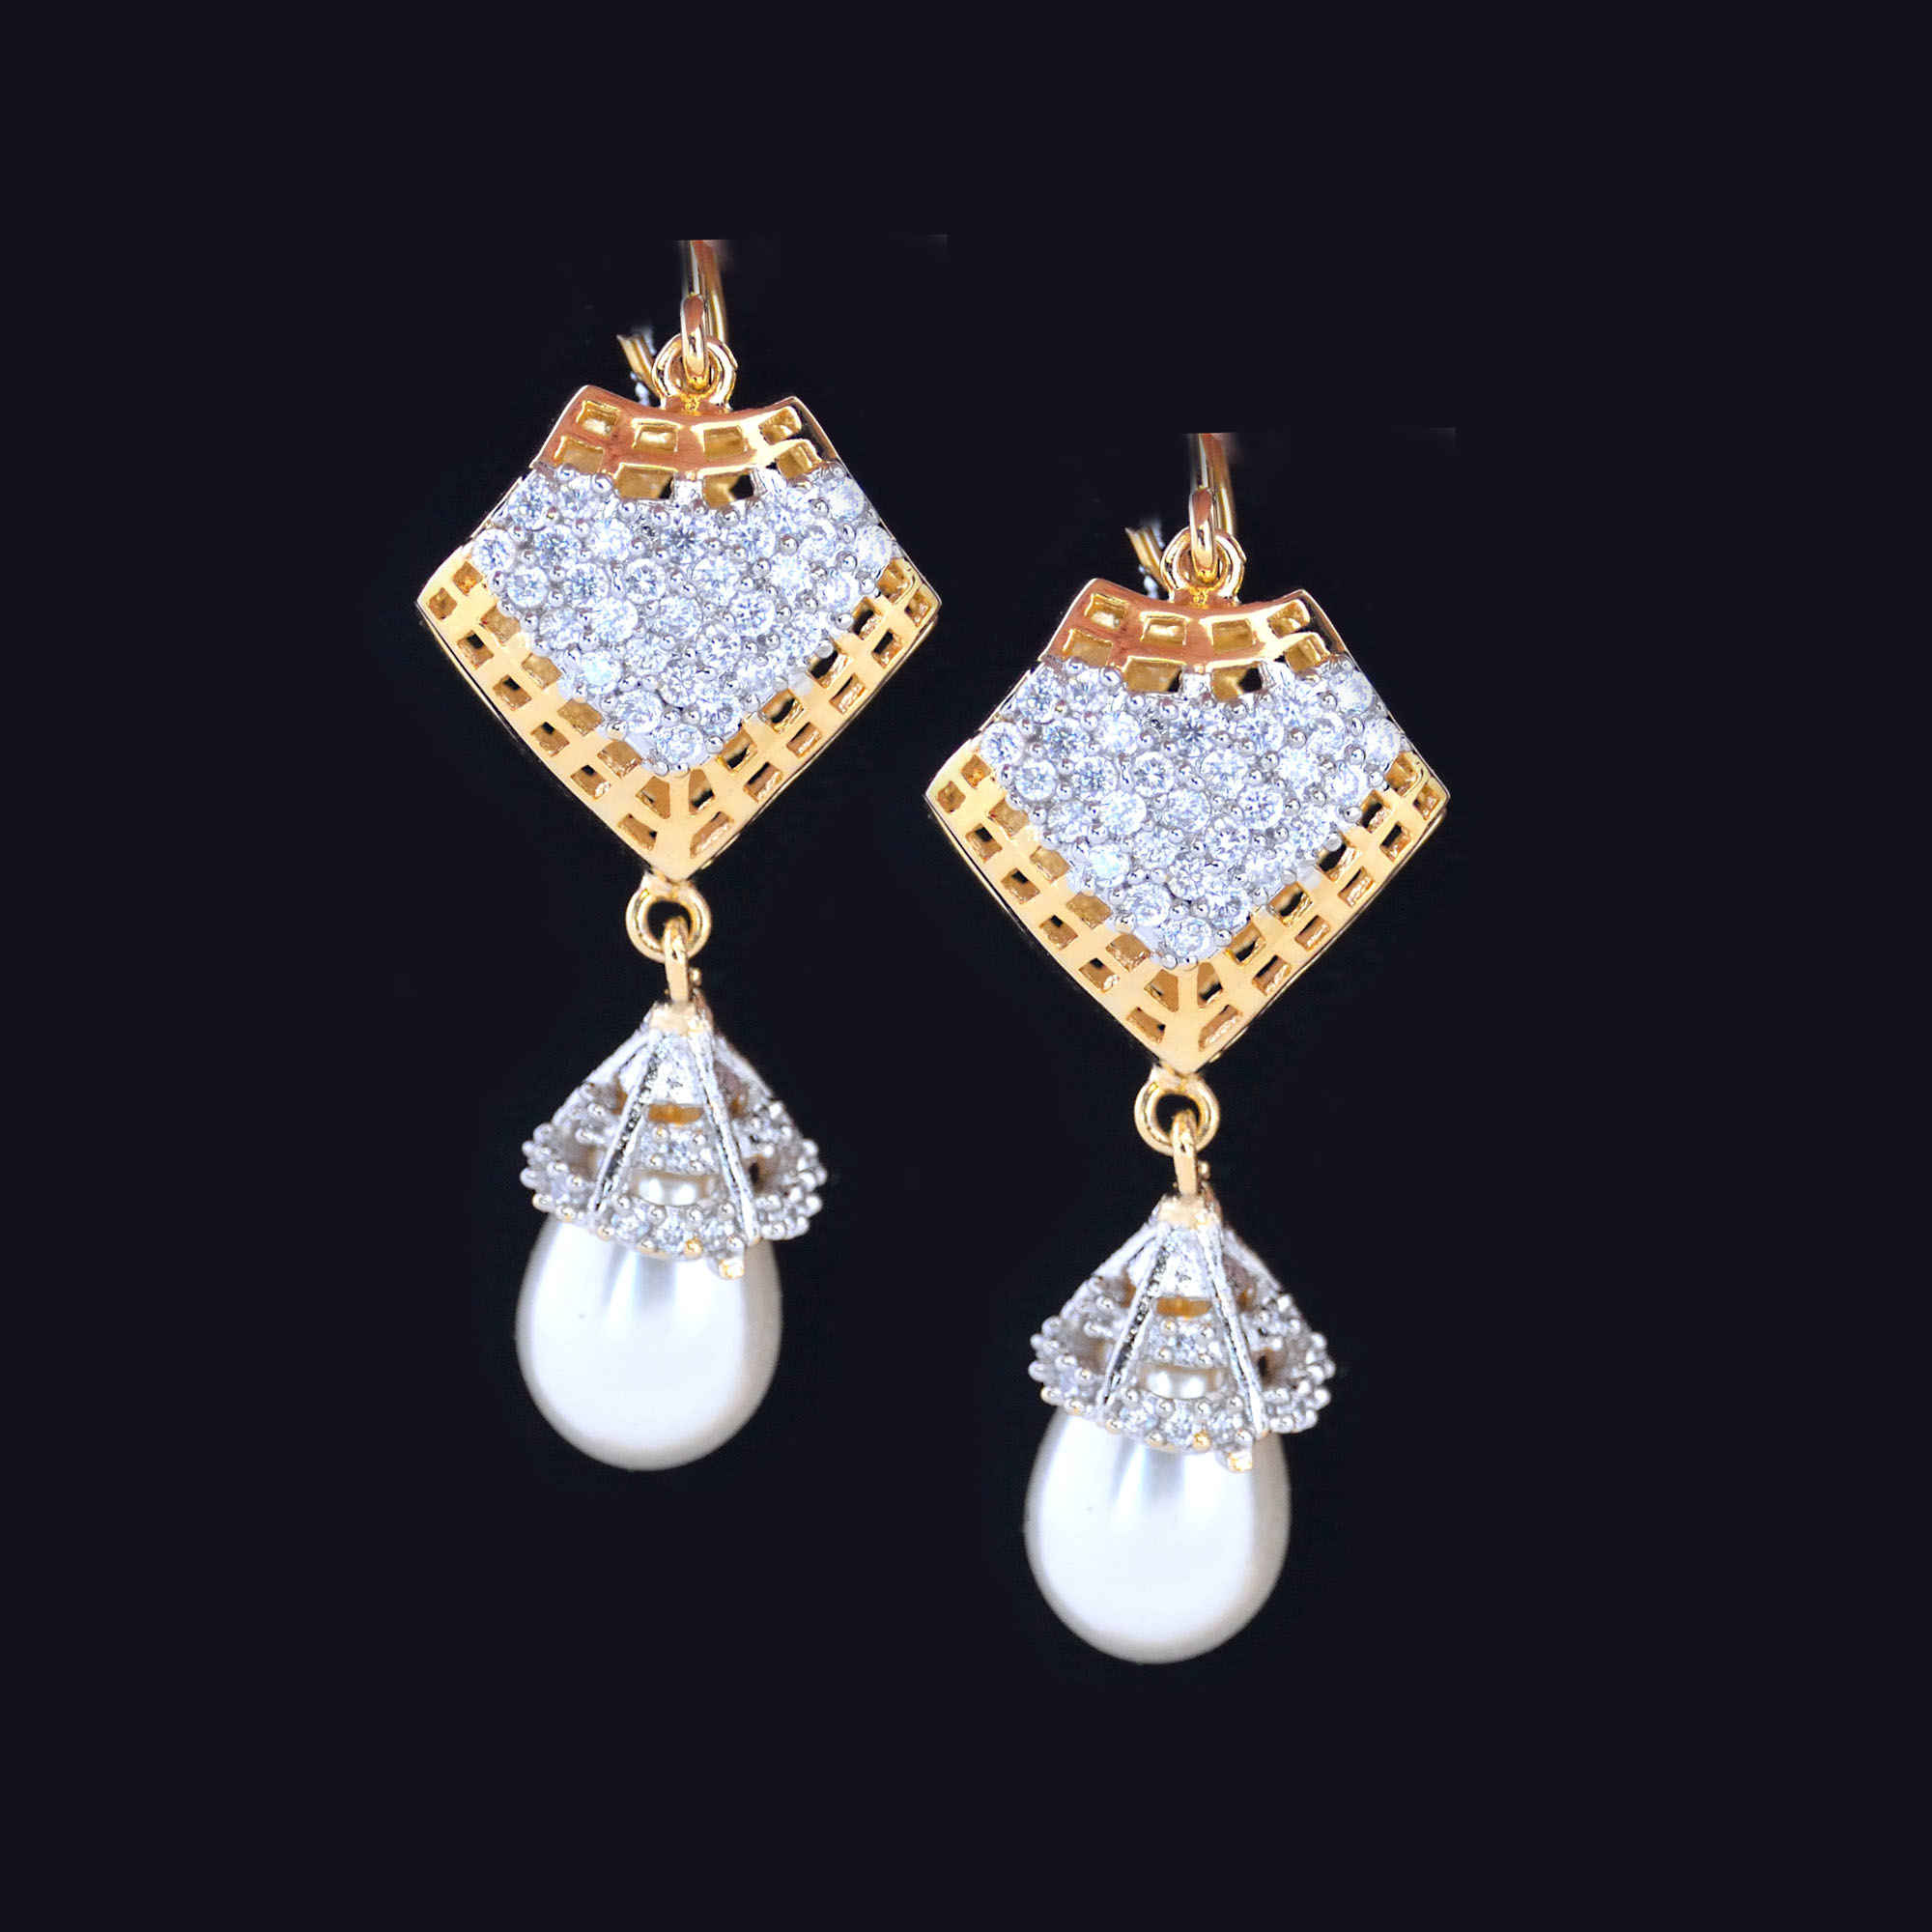 american of awesome indian earrings diamond jewellery